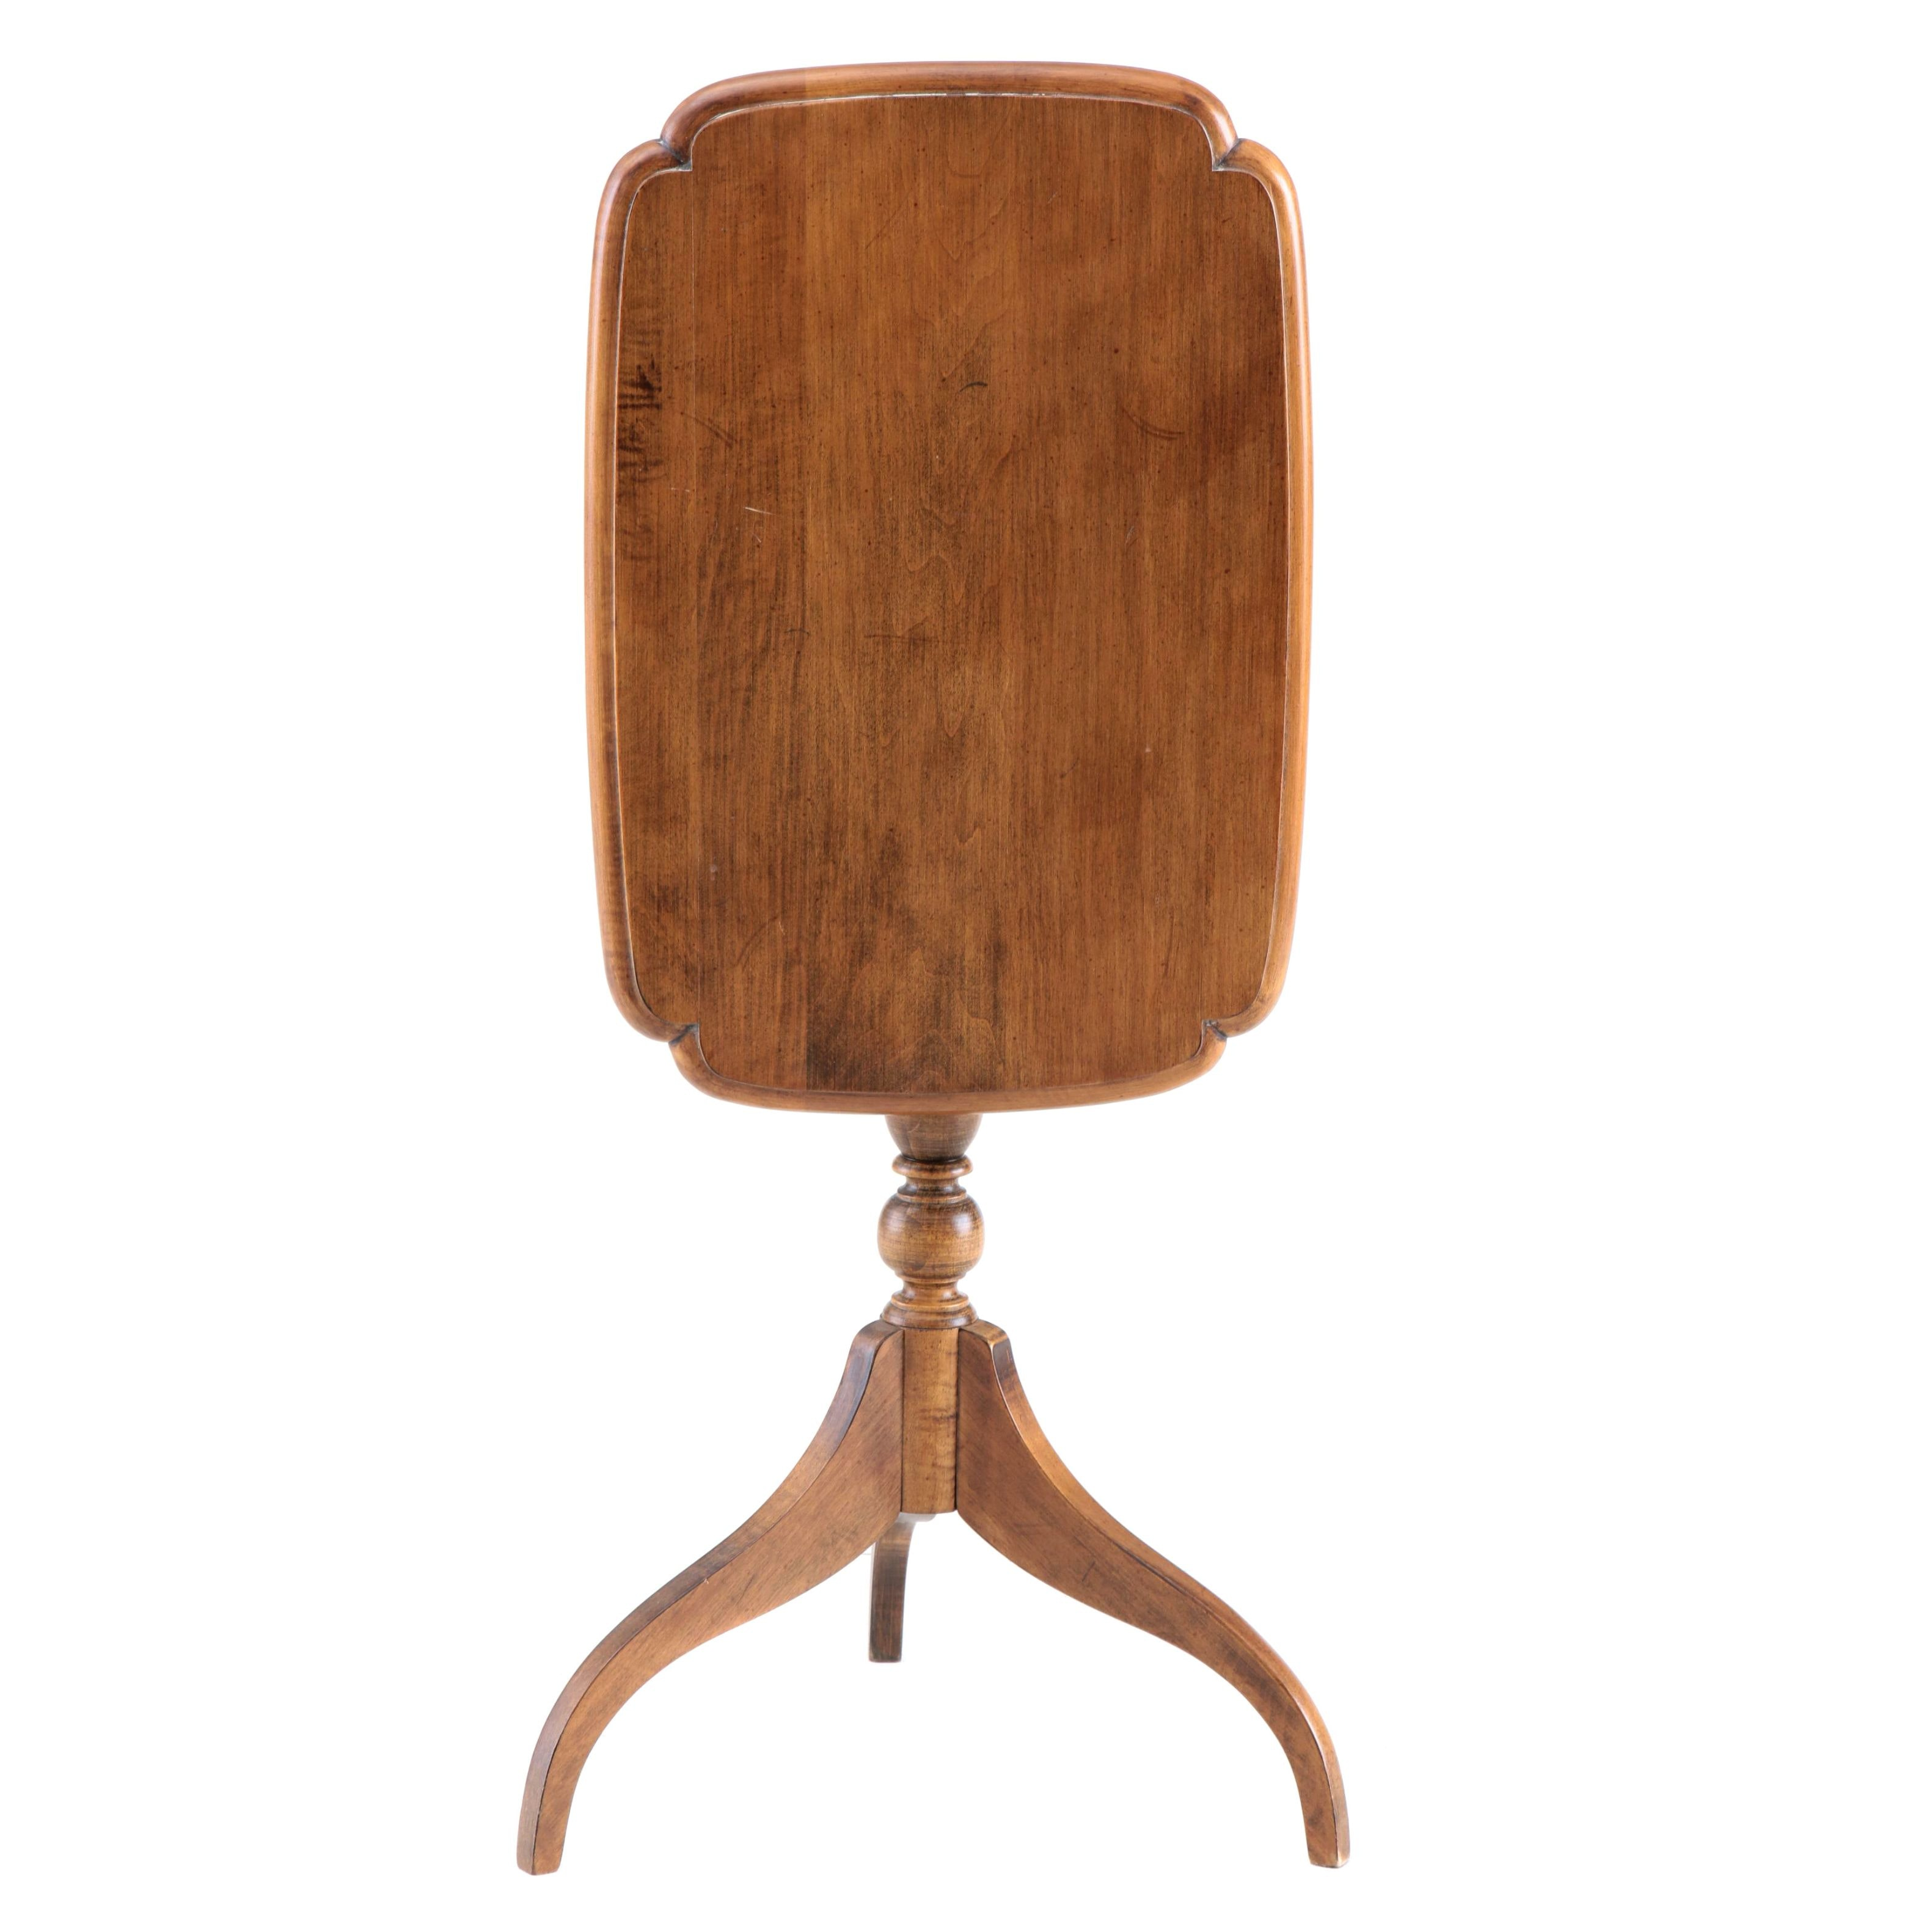 Federal Style Maple Tilt-Top Table by Ethan Allen